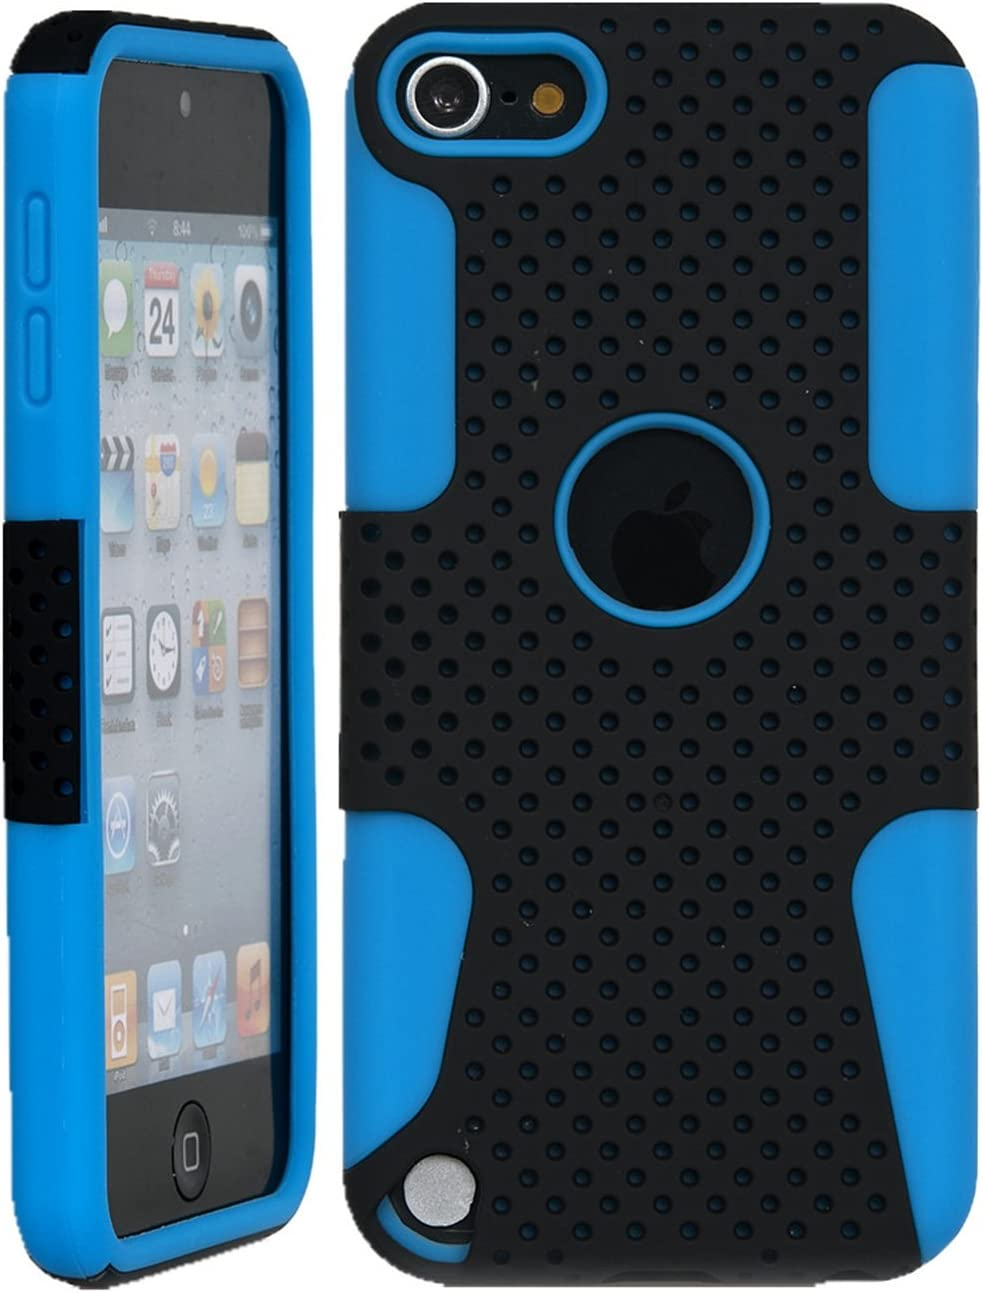 iPod Touch Dual-Layer Heavy OFFicial site Duty Matte Many popular brands Ru Slim Ultra Perforated